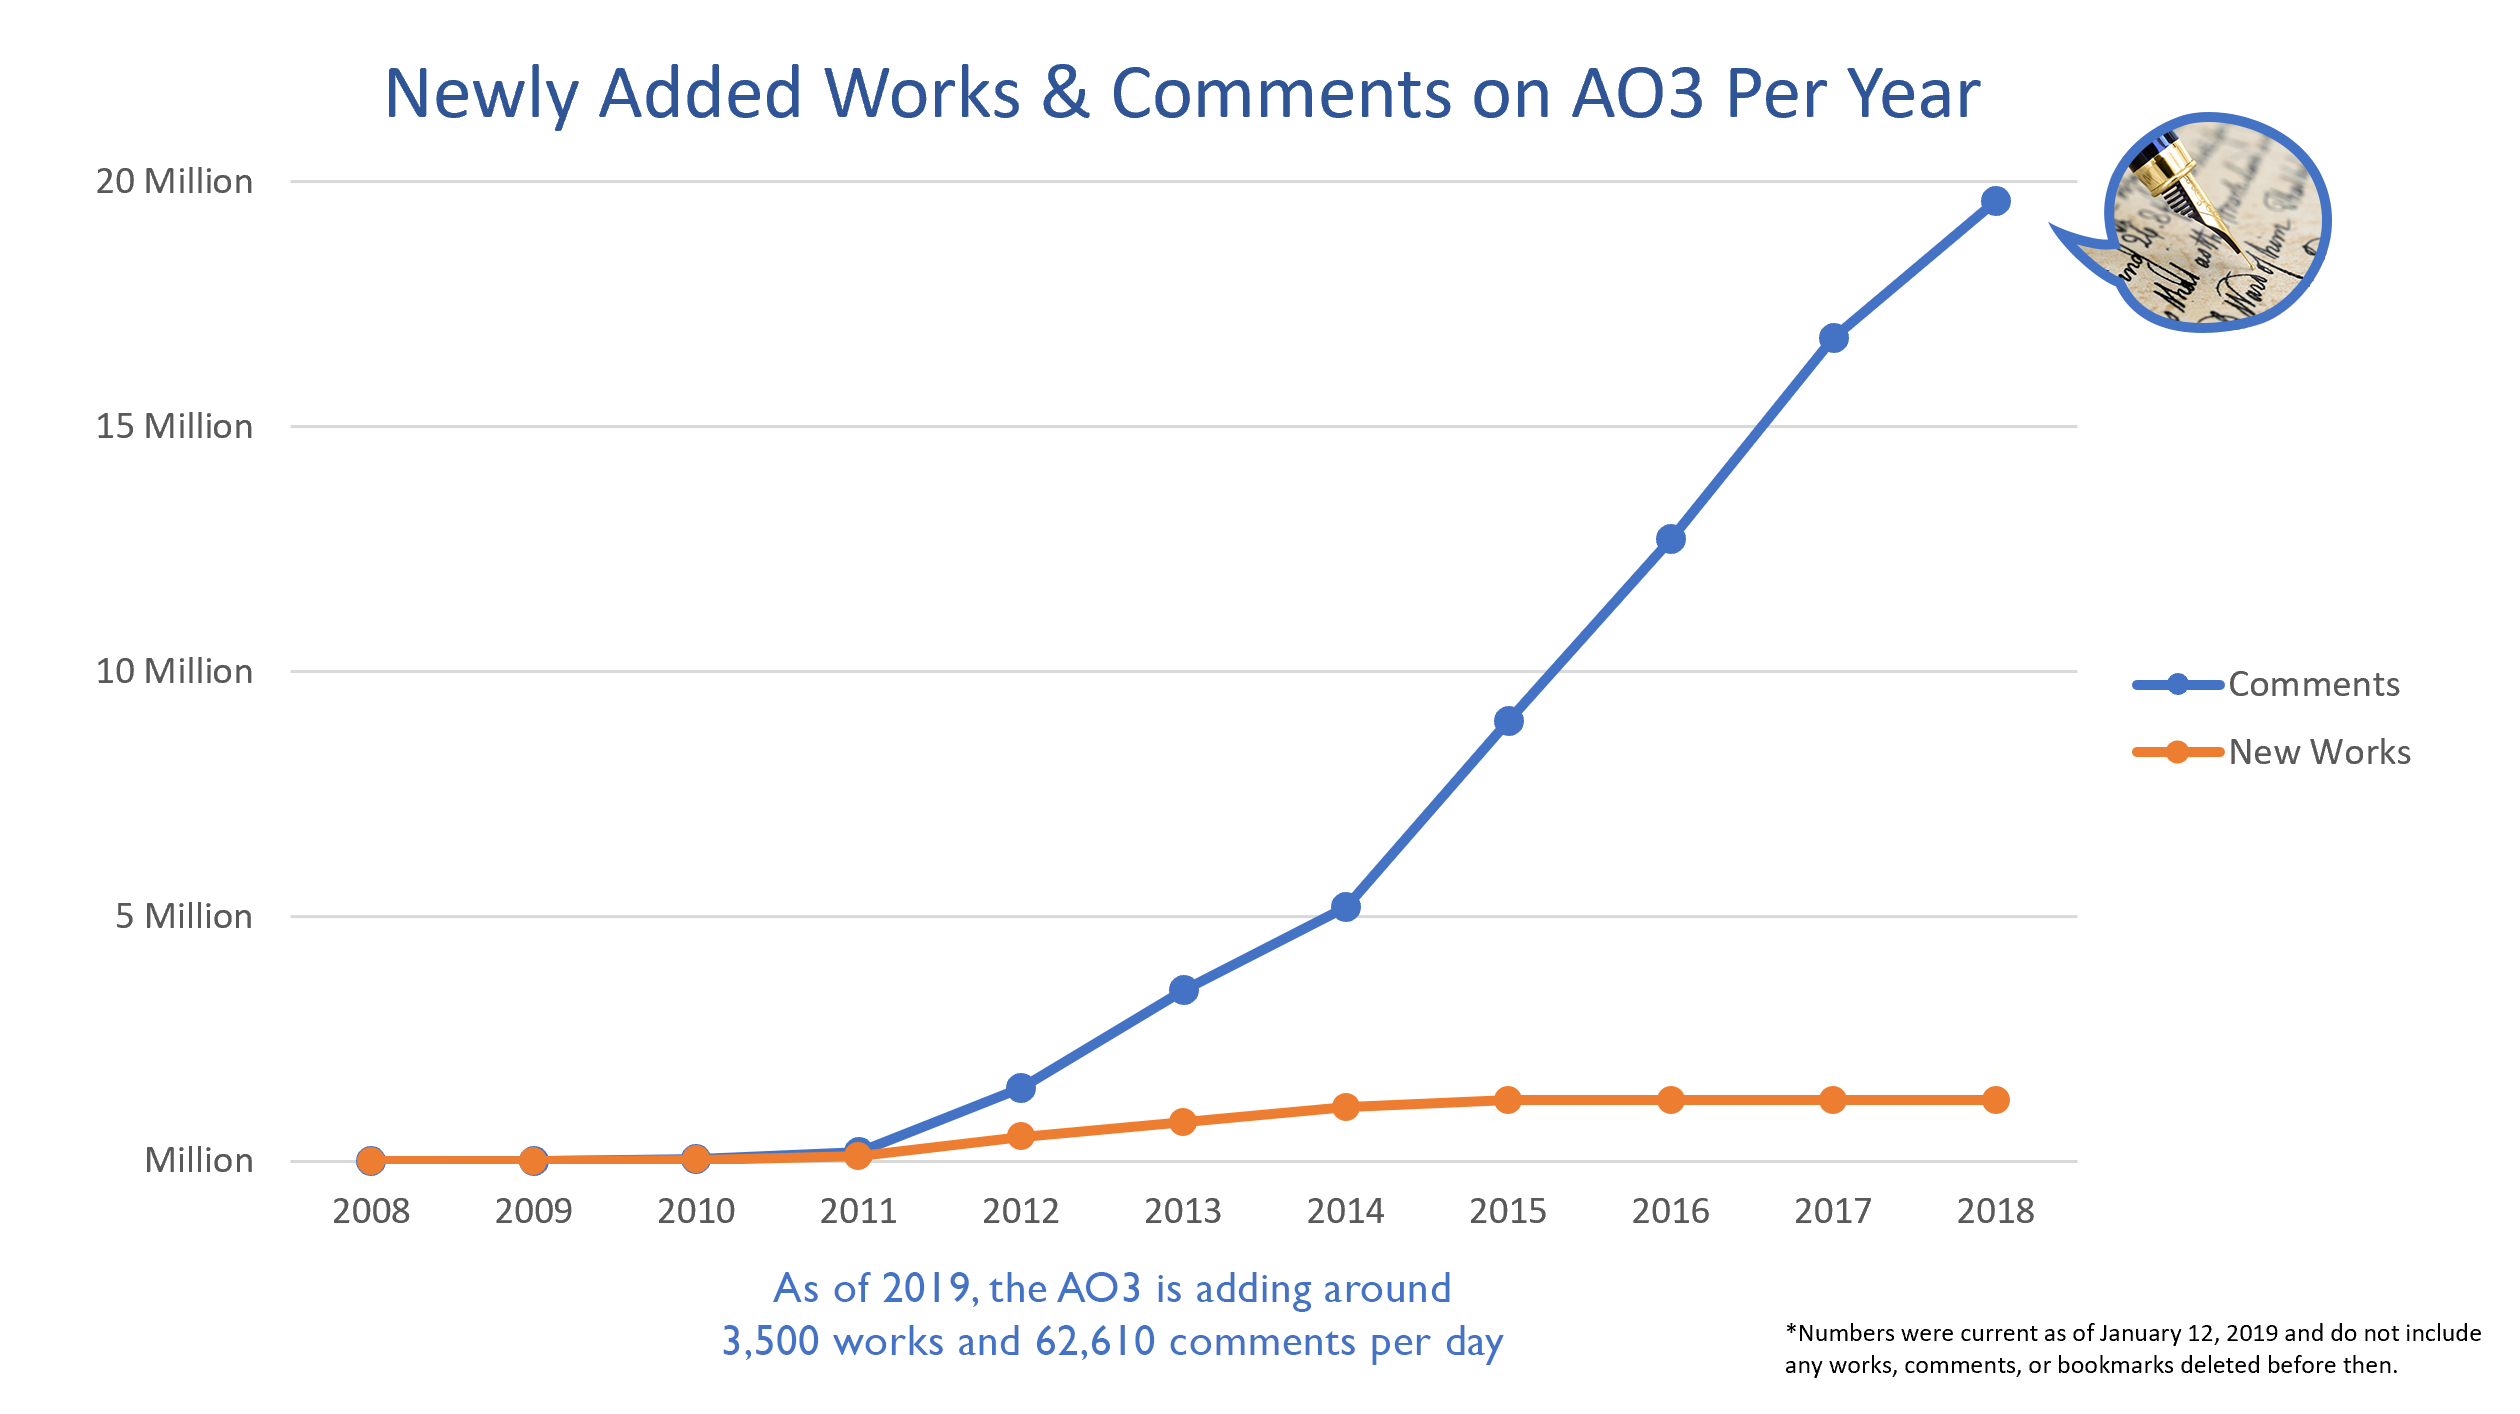 Newly added works and comments on AO3 per year, from 2008 to 2018. As of 2019, the AO3 is adding around 3,500 works and 62,610 comments per day.